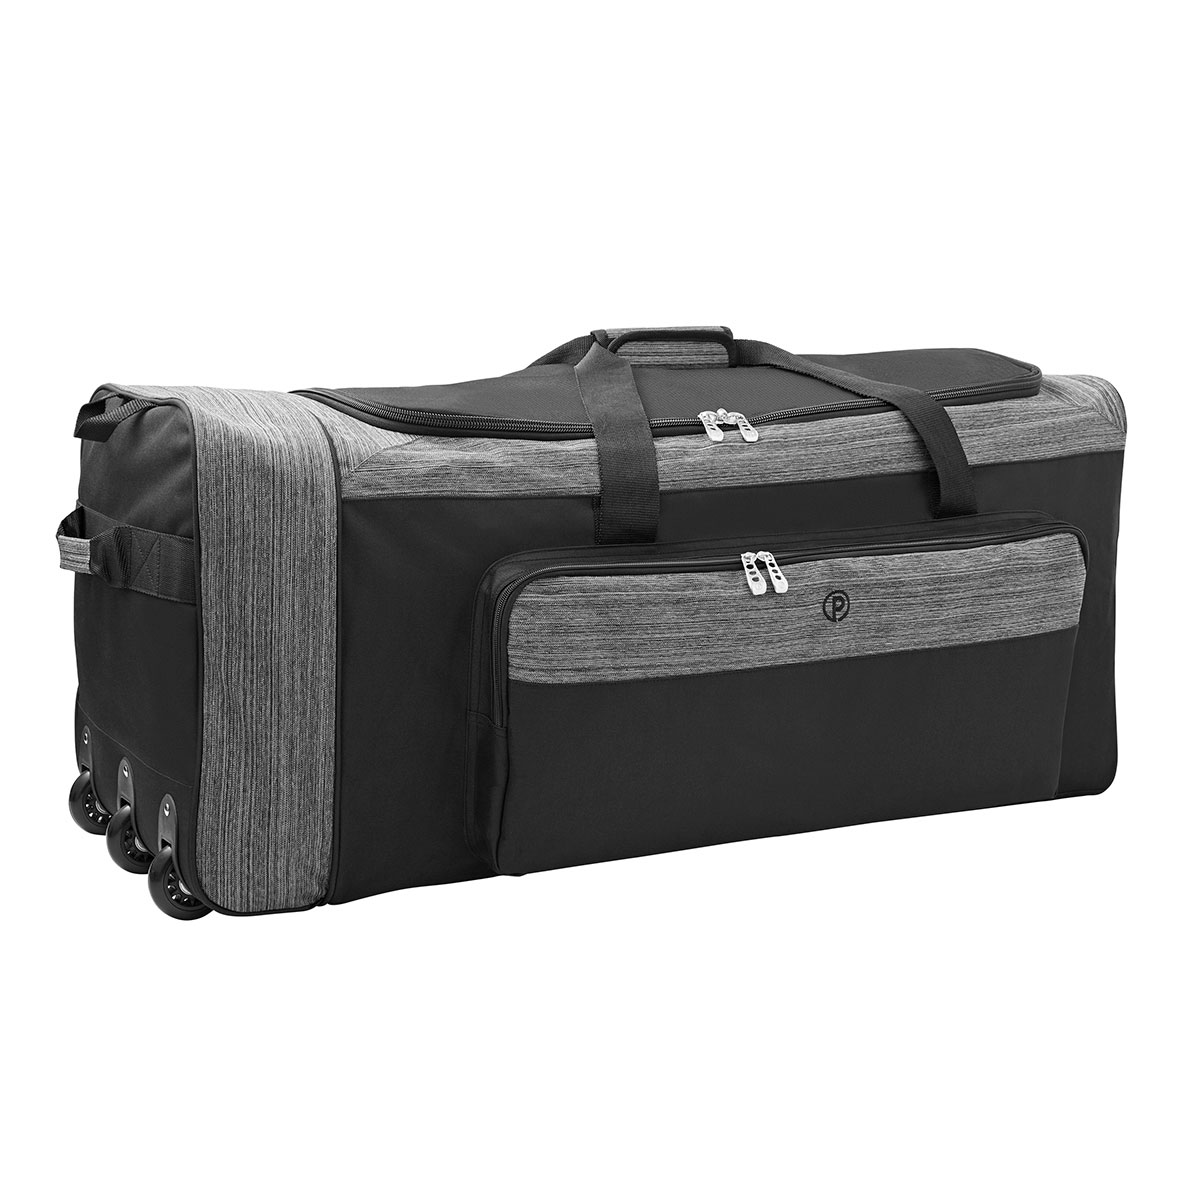 Details About Duffle Bag Travel Rolling Trunk Extra Large Luggage Sports Duffel Bags 36